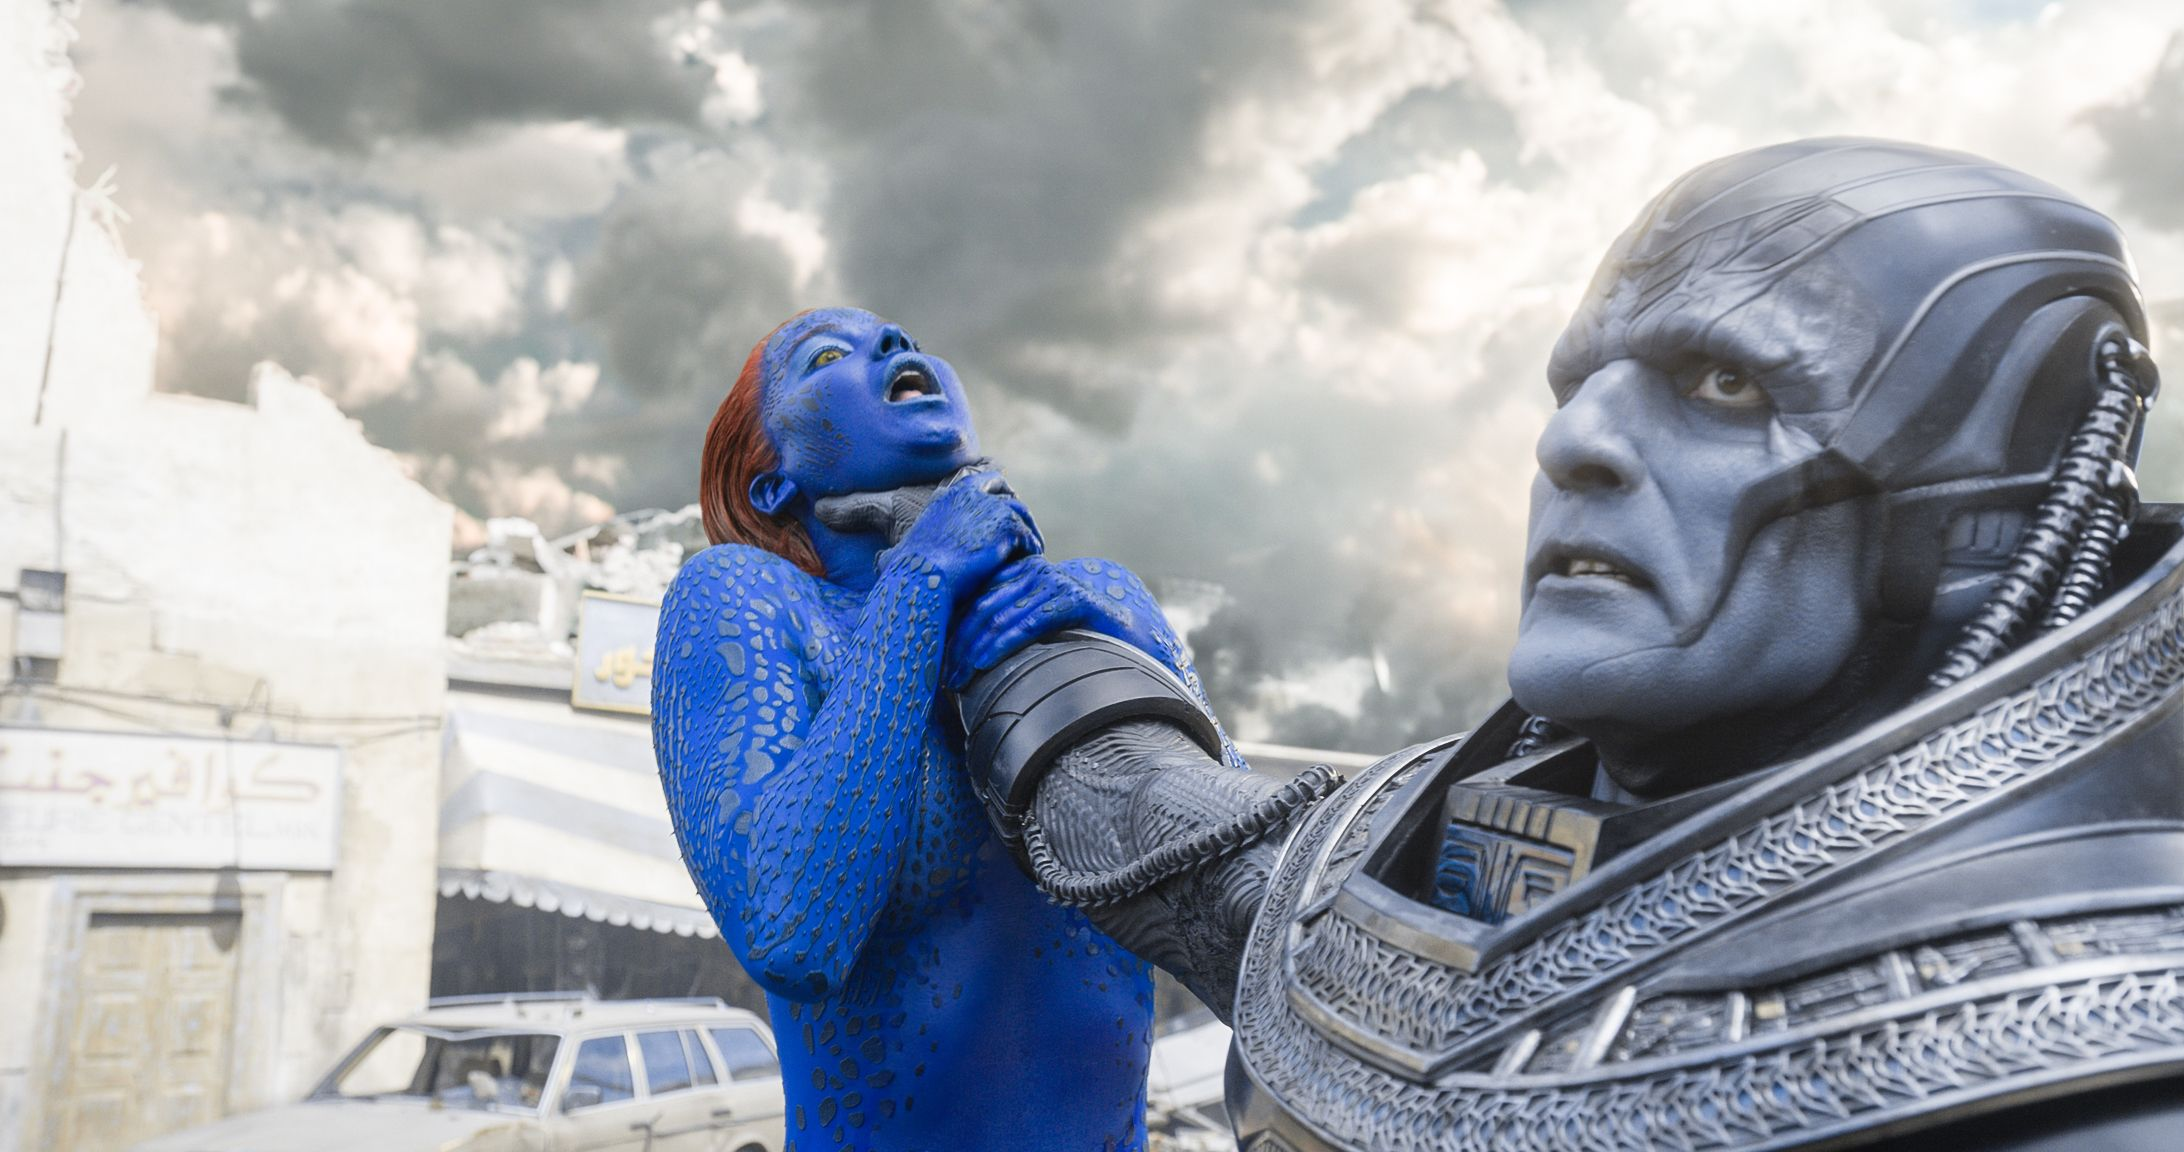 x men apocalypse star cast jennifer lawrence wallpaper image